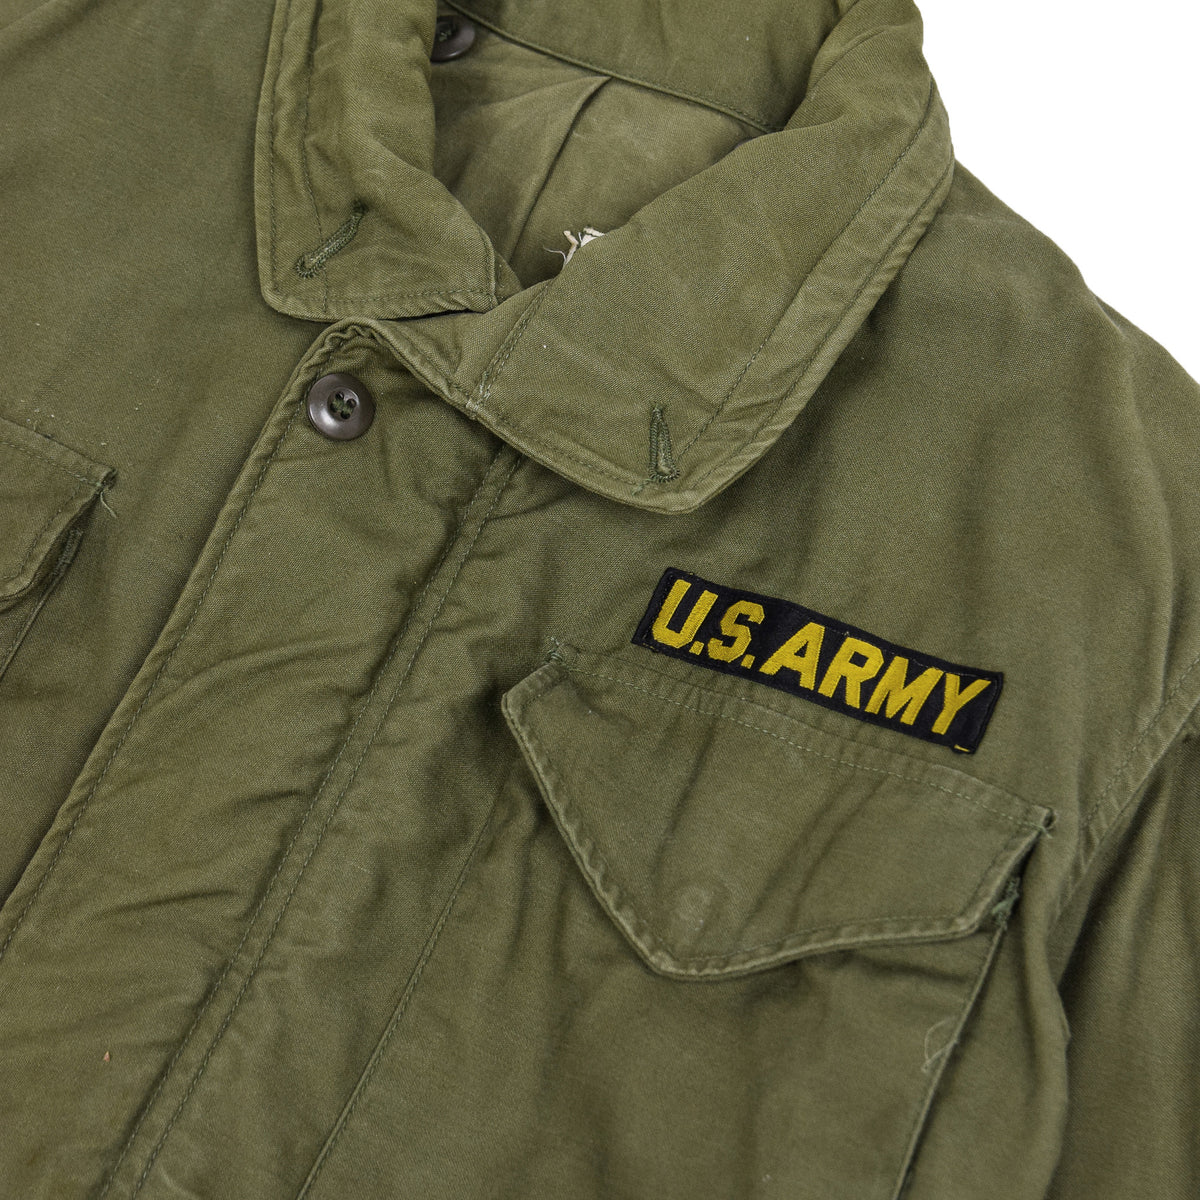 Vintage 60s Vietnam M-65 Man's Field Sateen 0G-107 Green US Army Coat S / M collar details